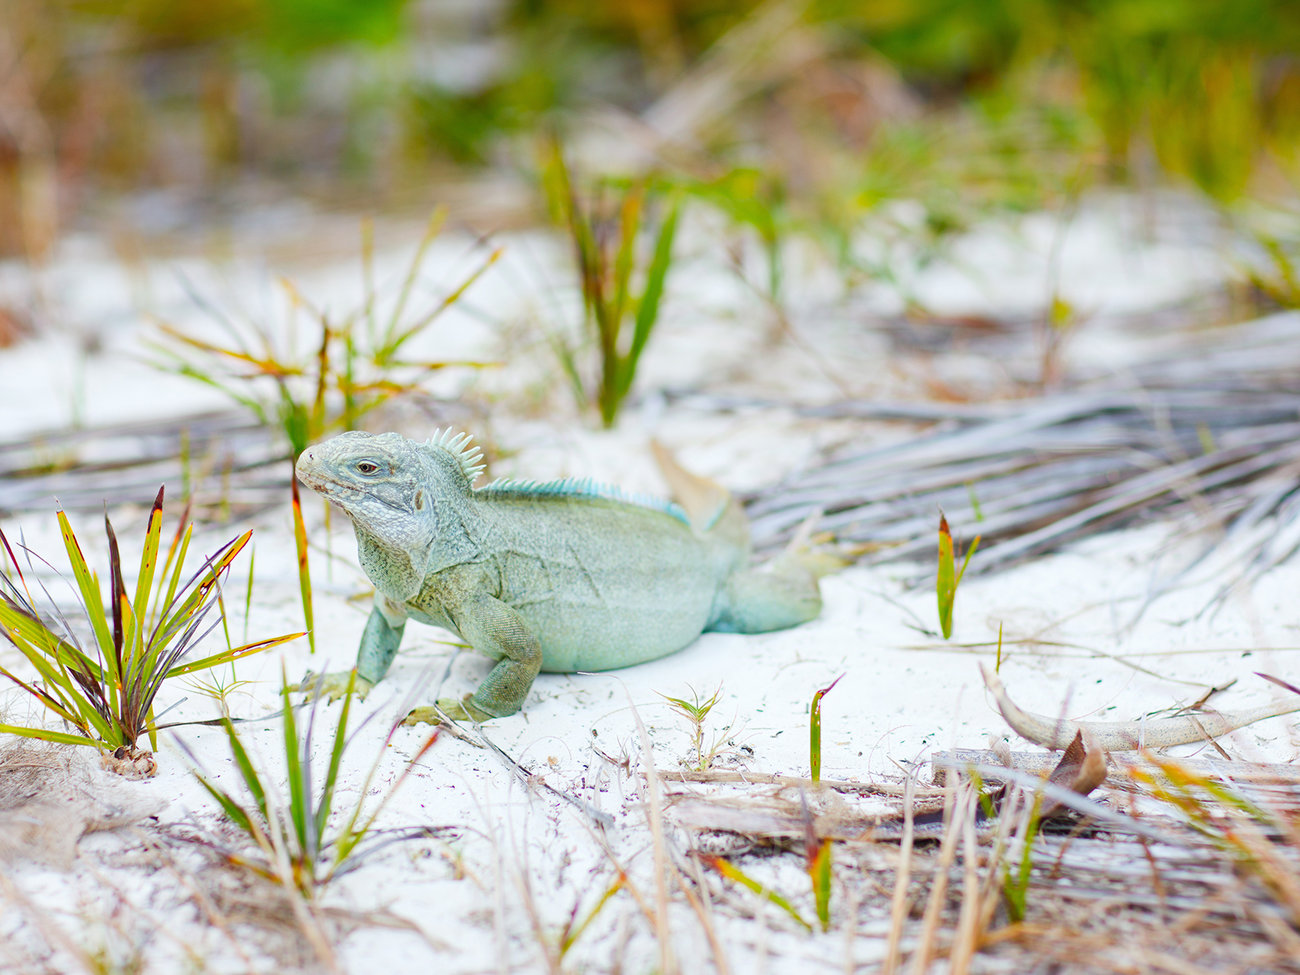 Little Water Cay Iguana Island in Turks and Caicos